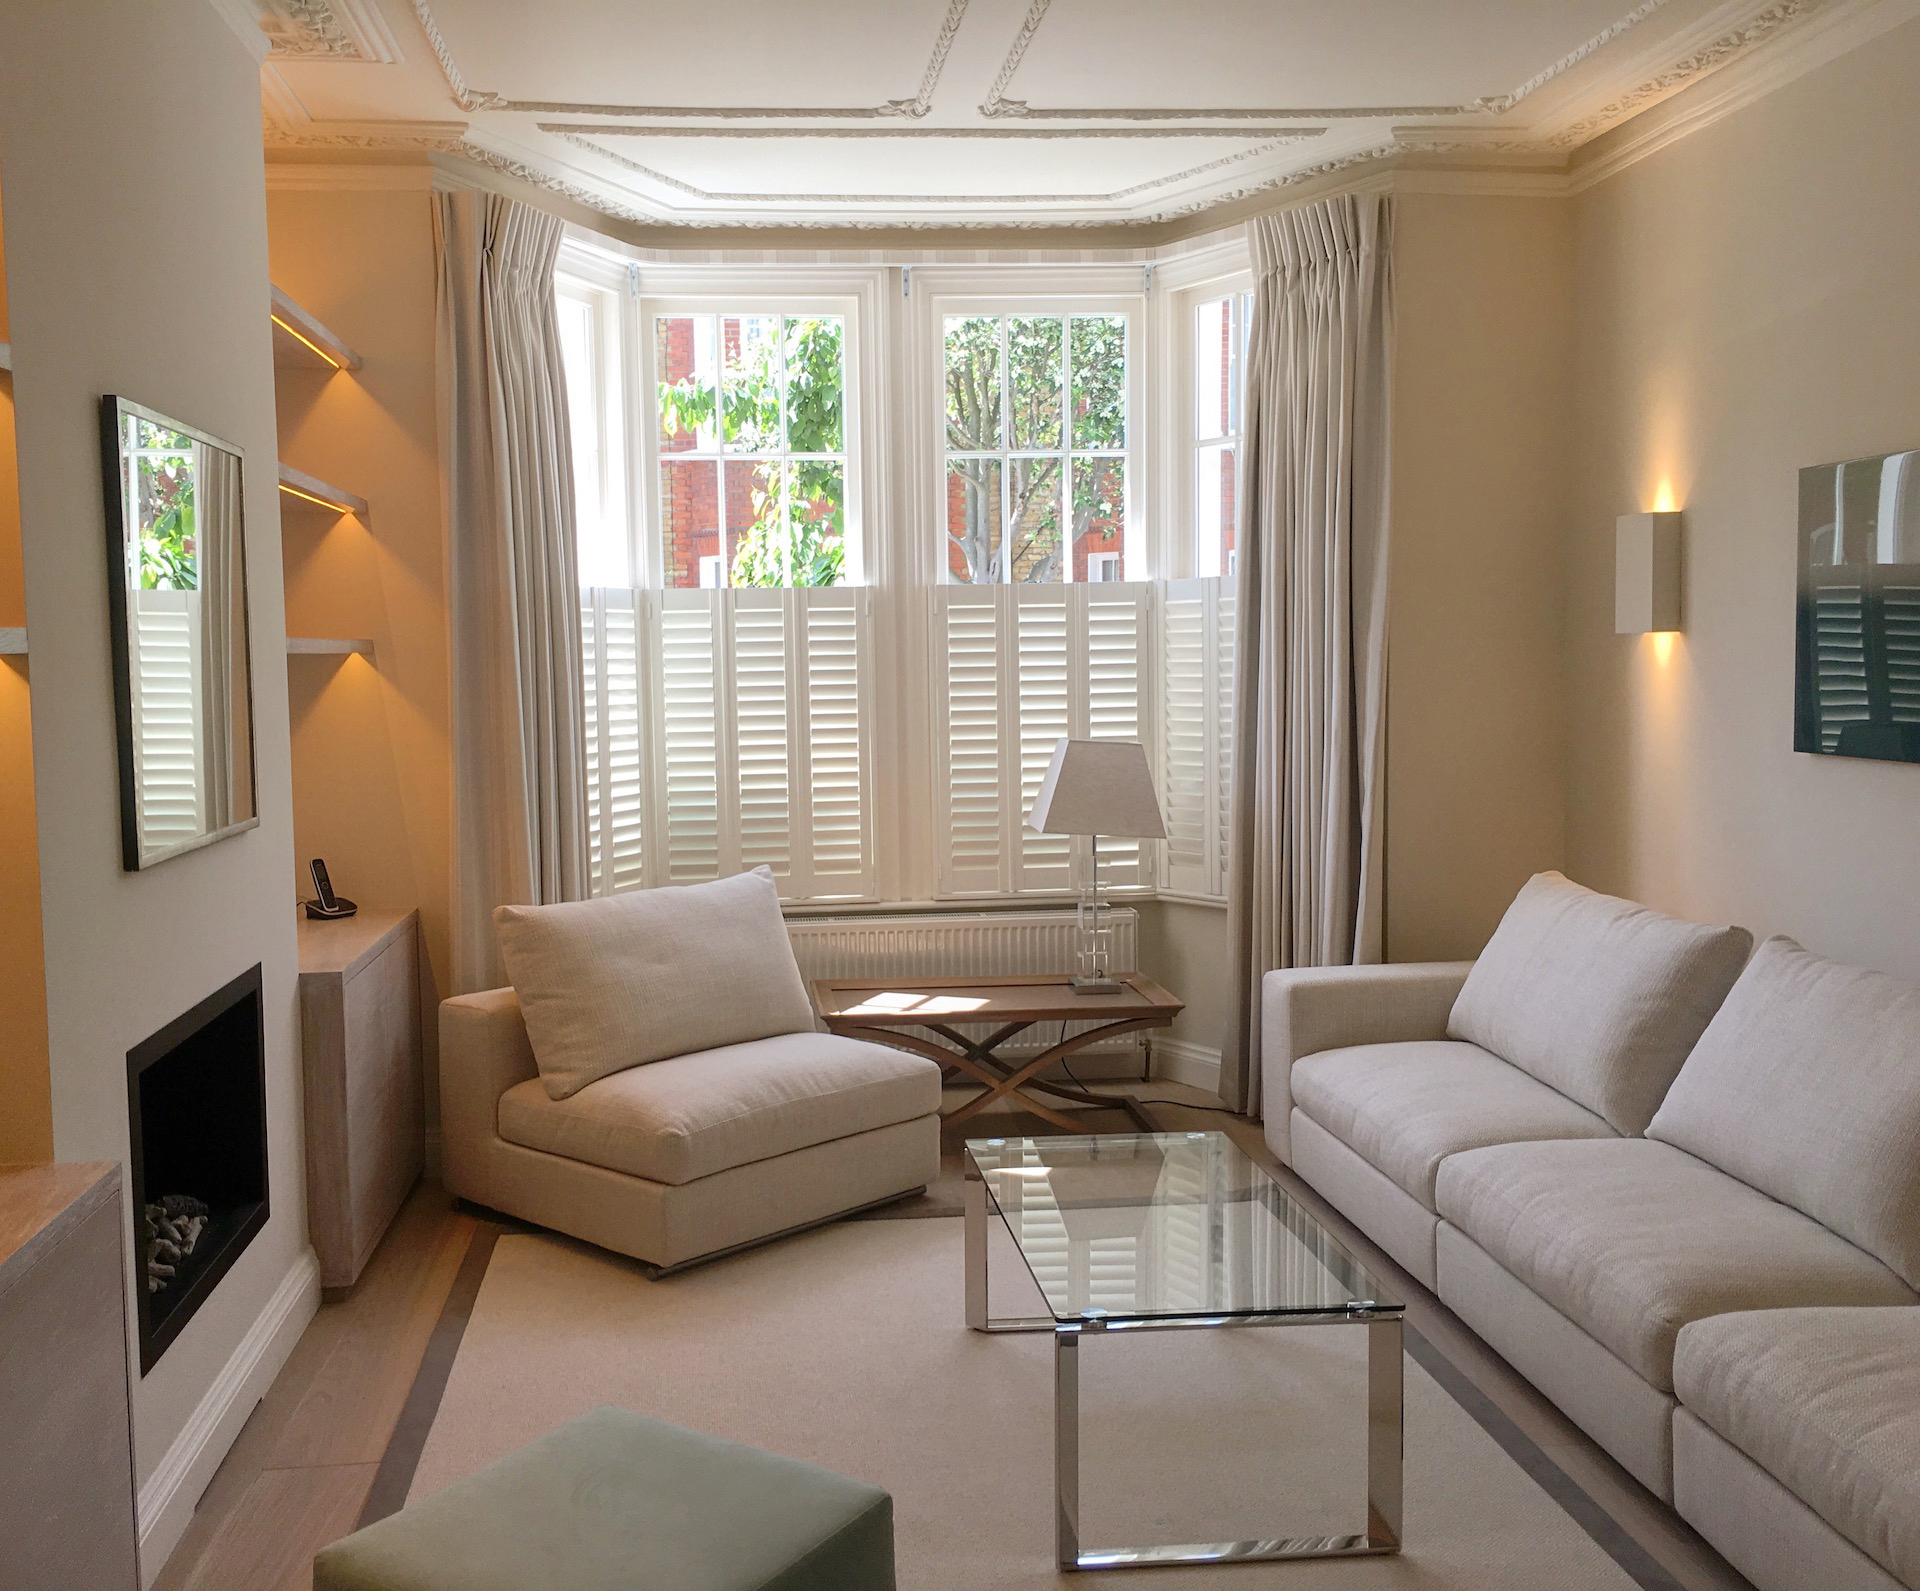 1-pinch-pleat-curtains-and-half-shutters.jpg